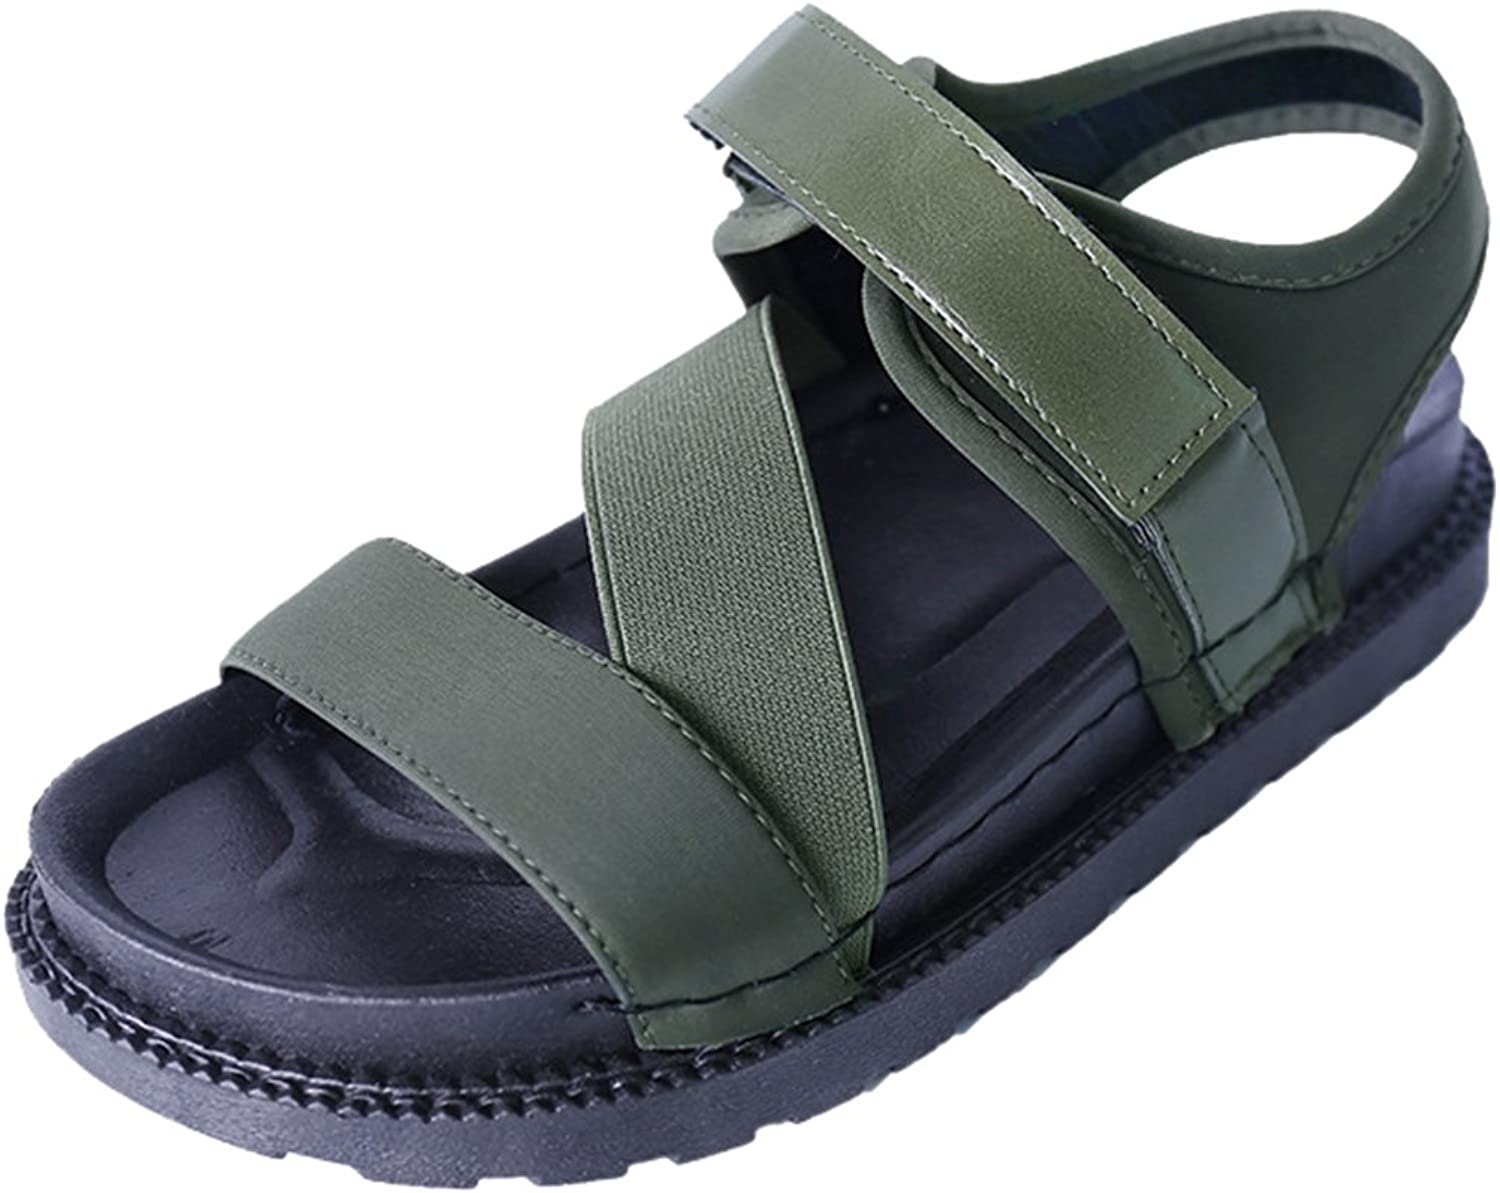 FEMAROLY Youth Girls Fashion Roman Sandals Student Summer Velcro Sandal